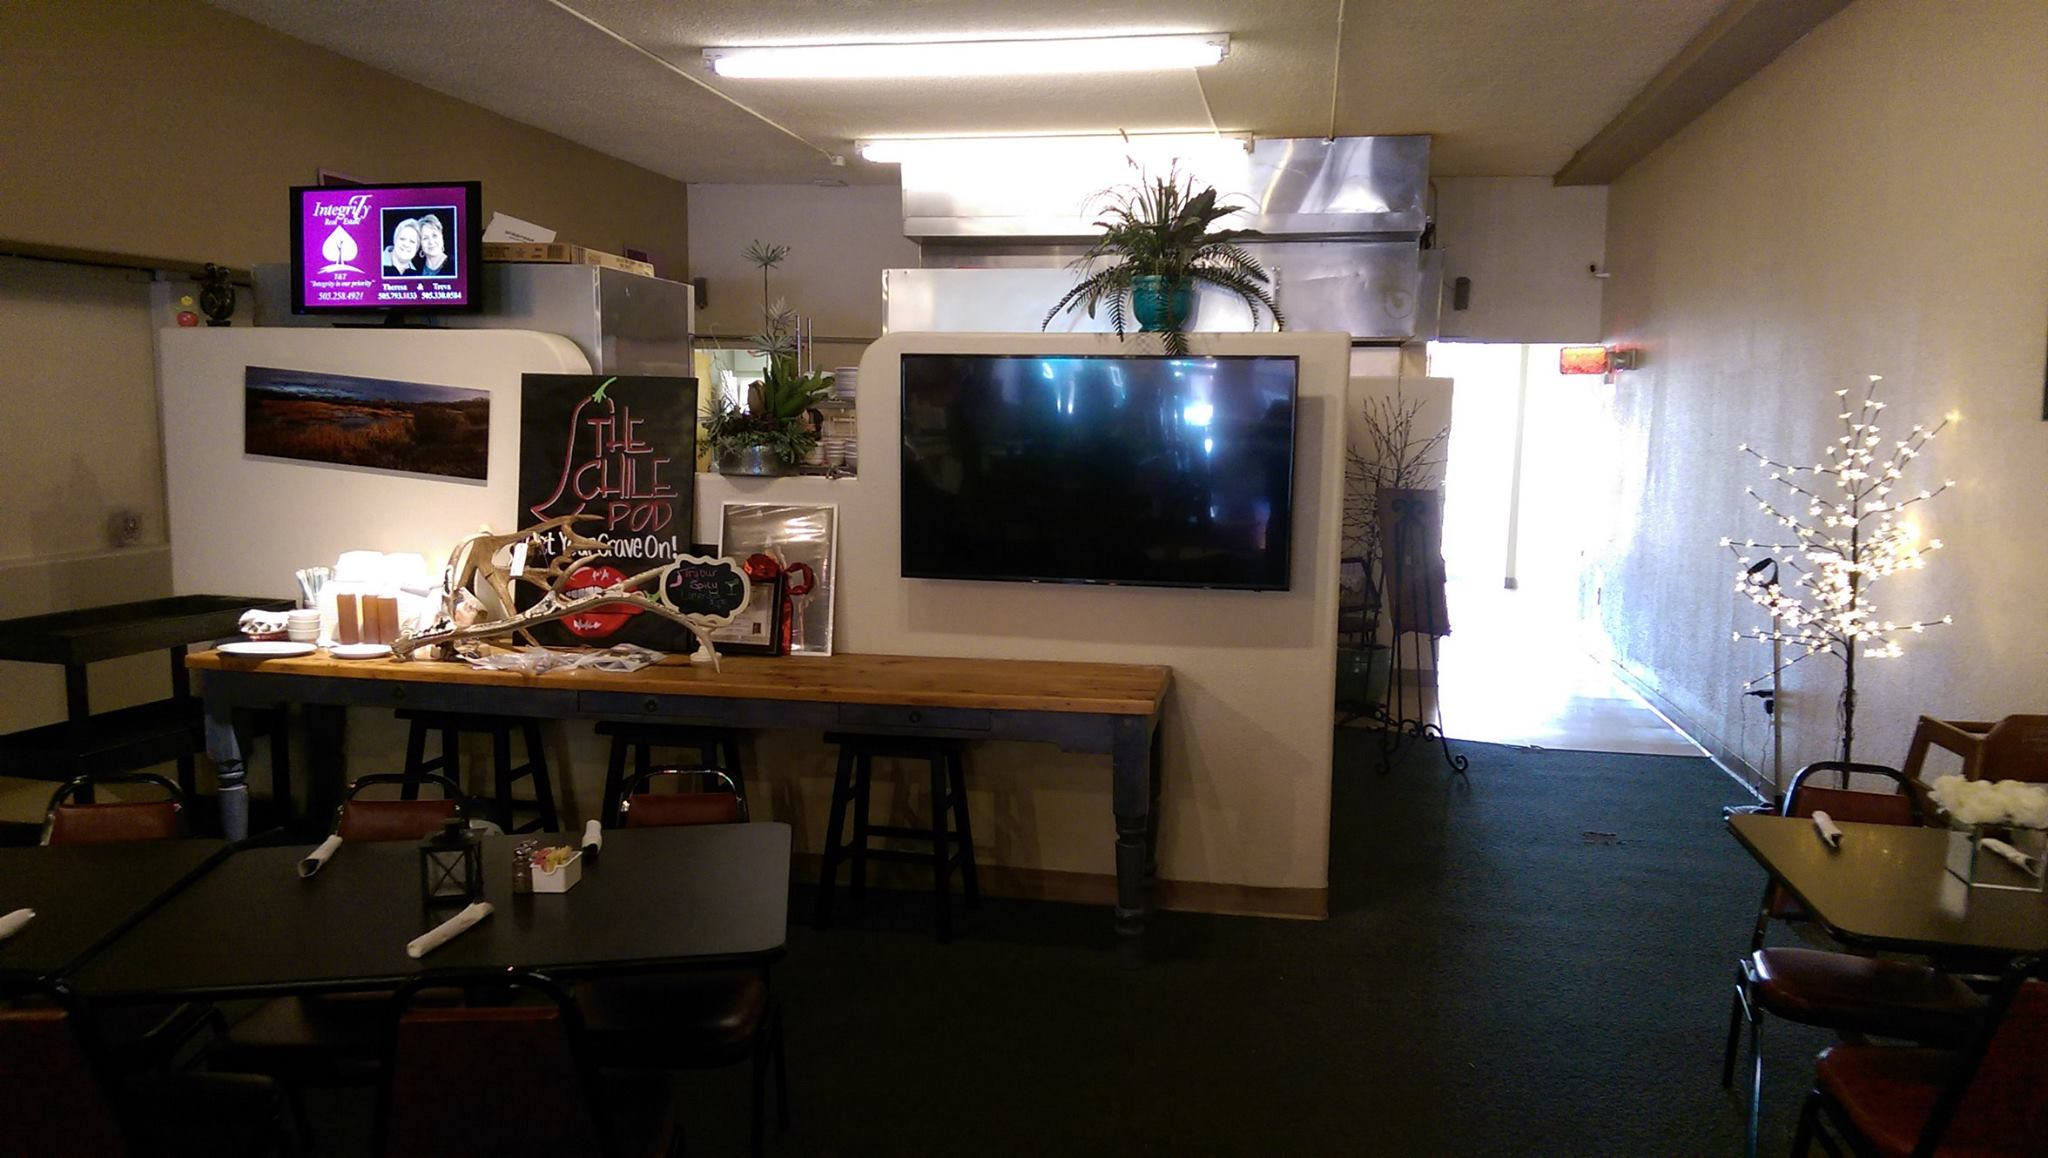 4k samsung installation in farmington nm at The Chile Pod